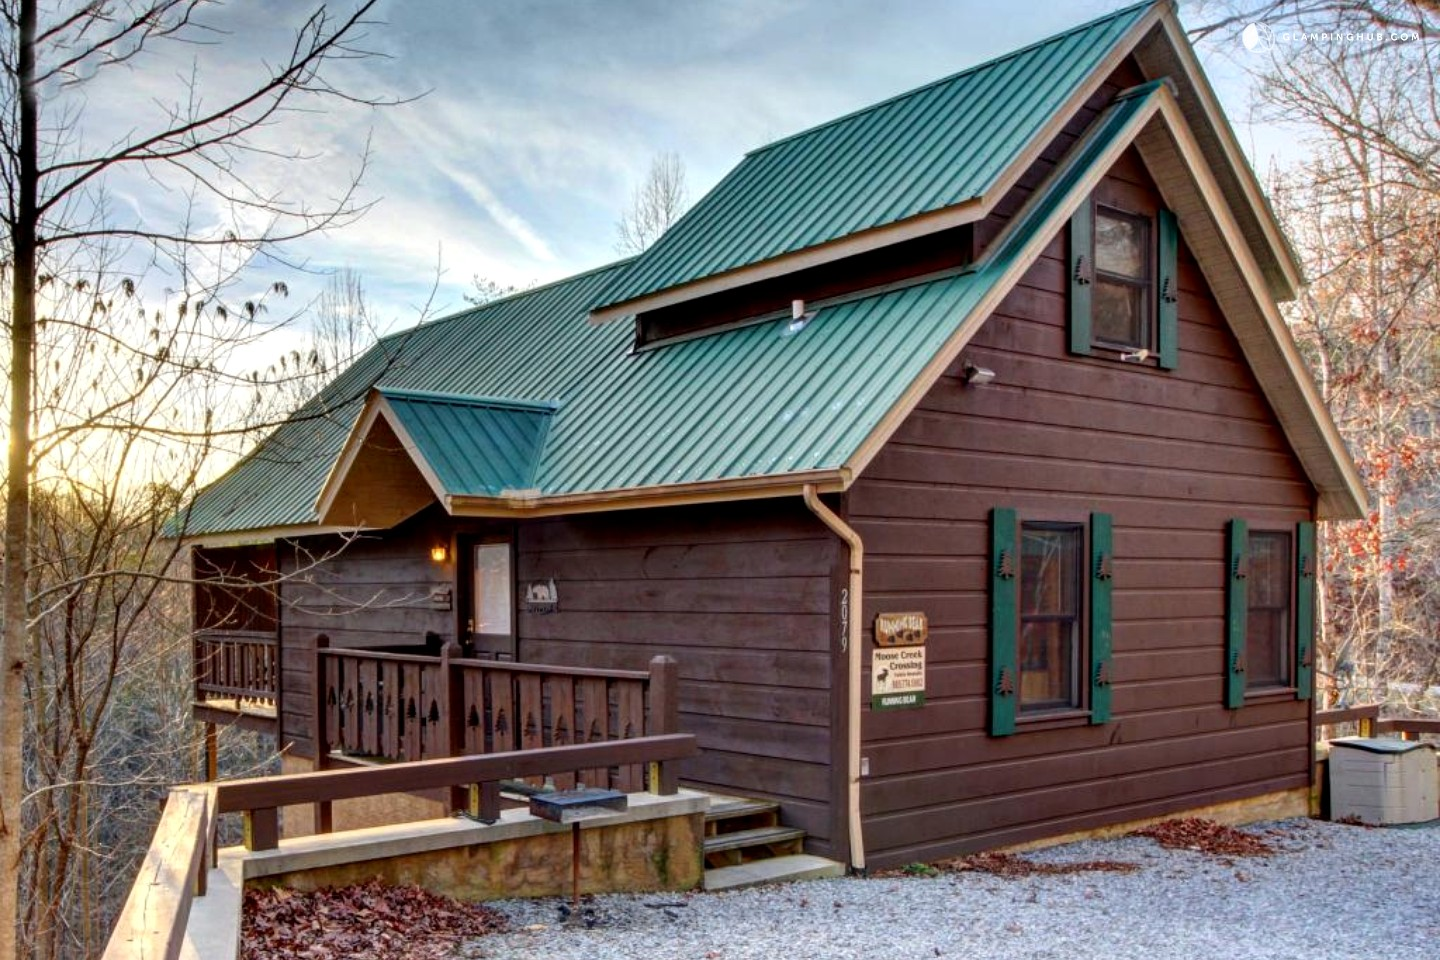 Cabin by great smoky mountains national park tennessee for Smoky mountain tennessee cabin rentals